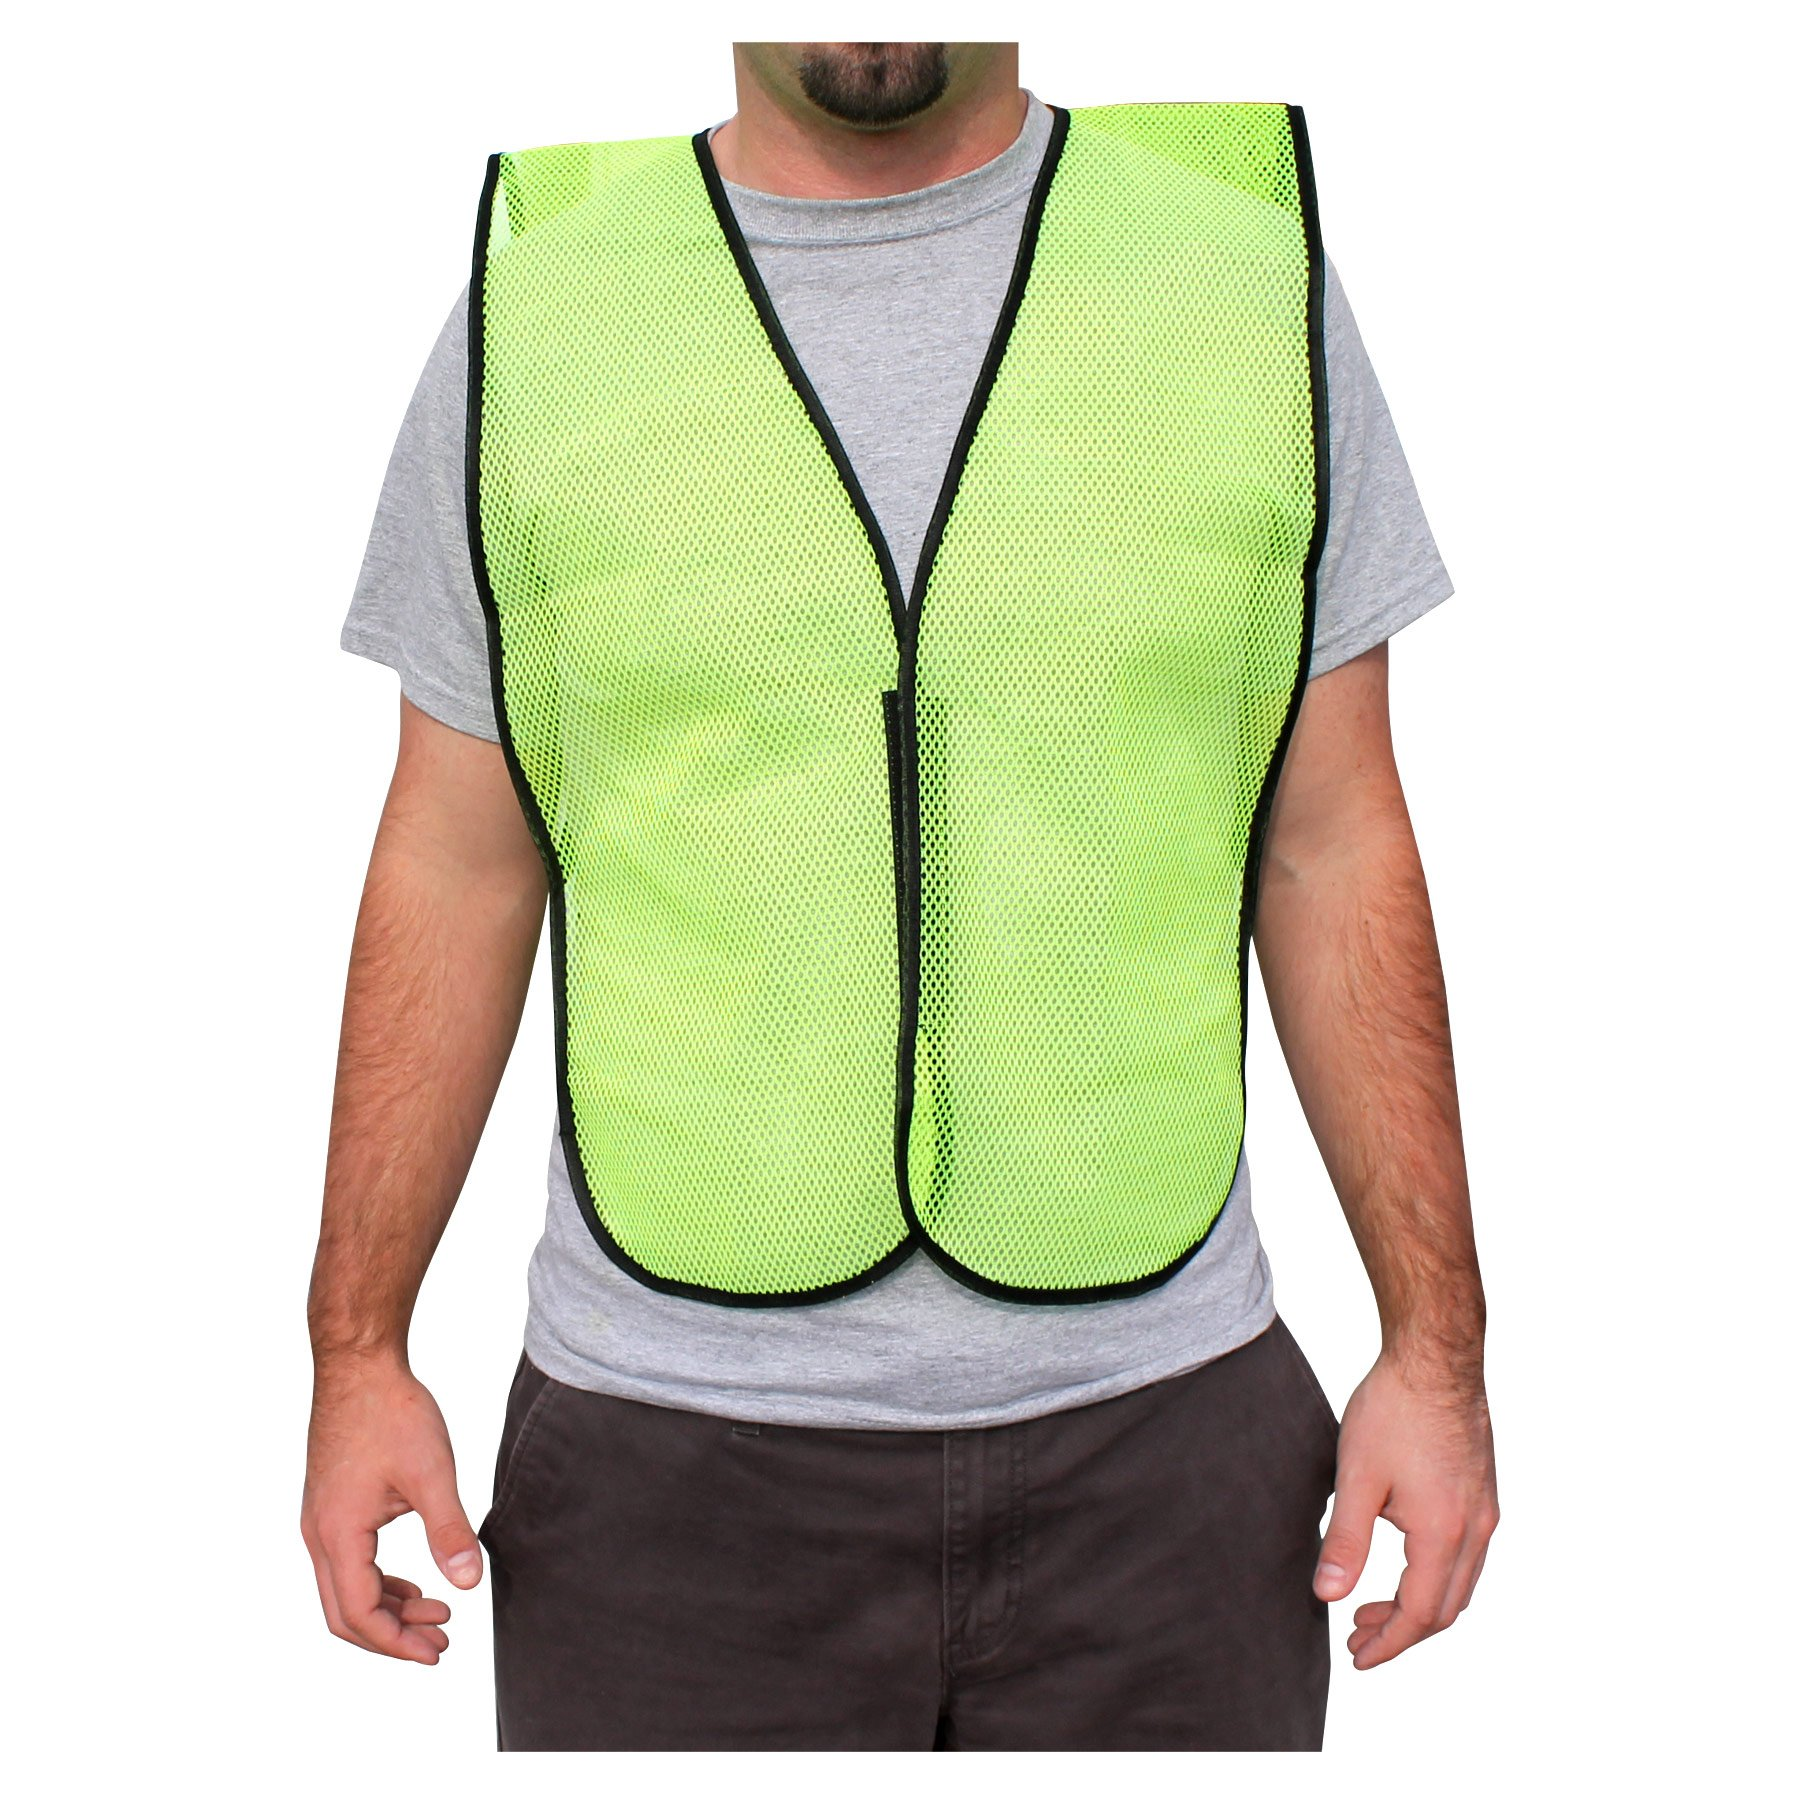 Rugged Blue RB Mesh Fabric Economy Non-ANSI Safety Vest, X-Large, Hi-Vis Yellow